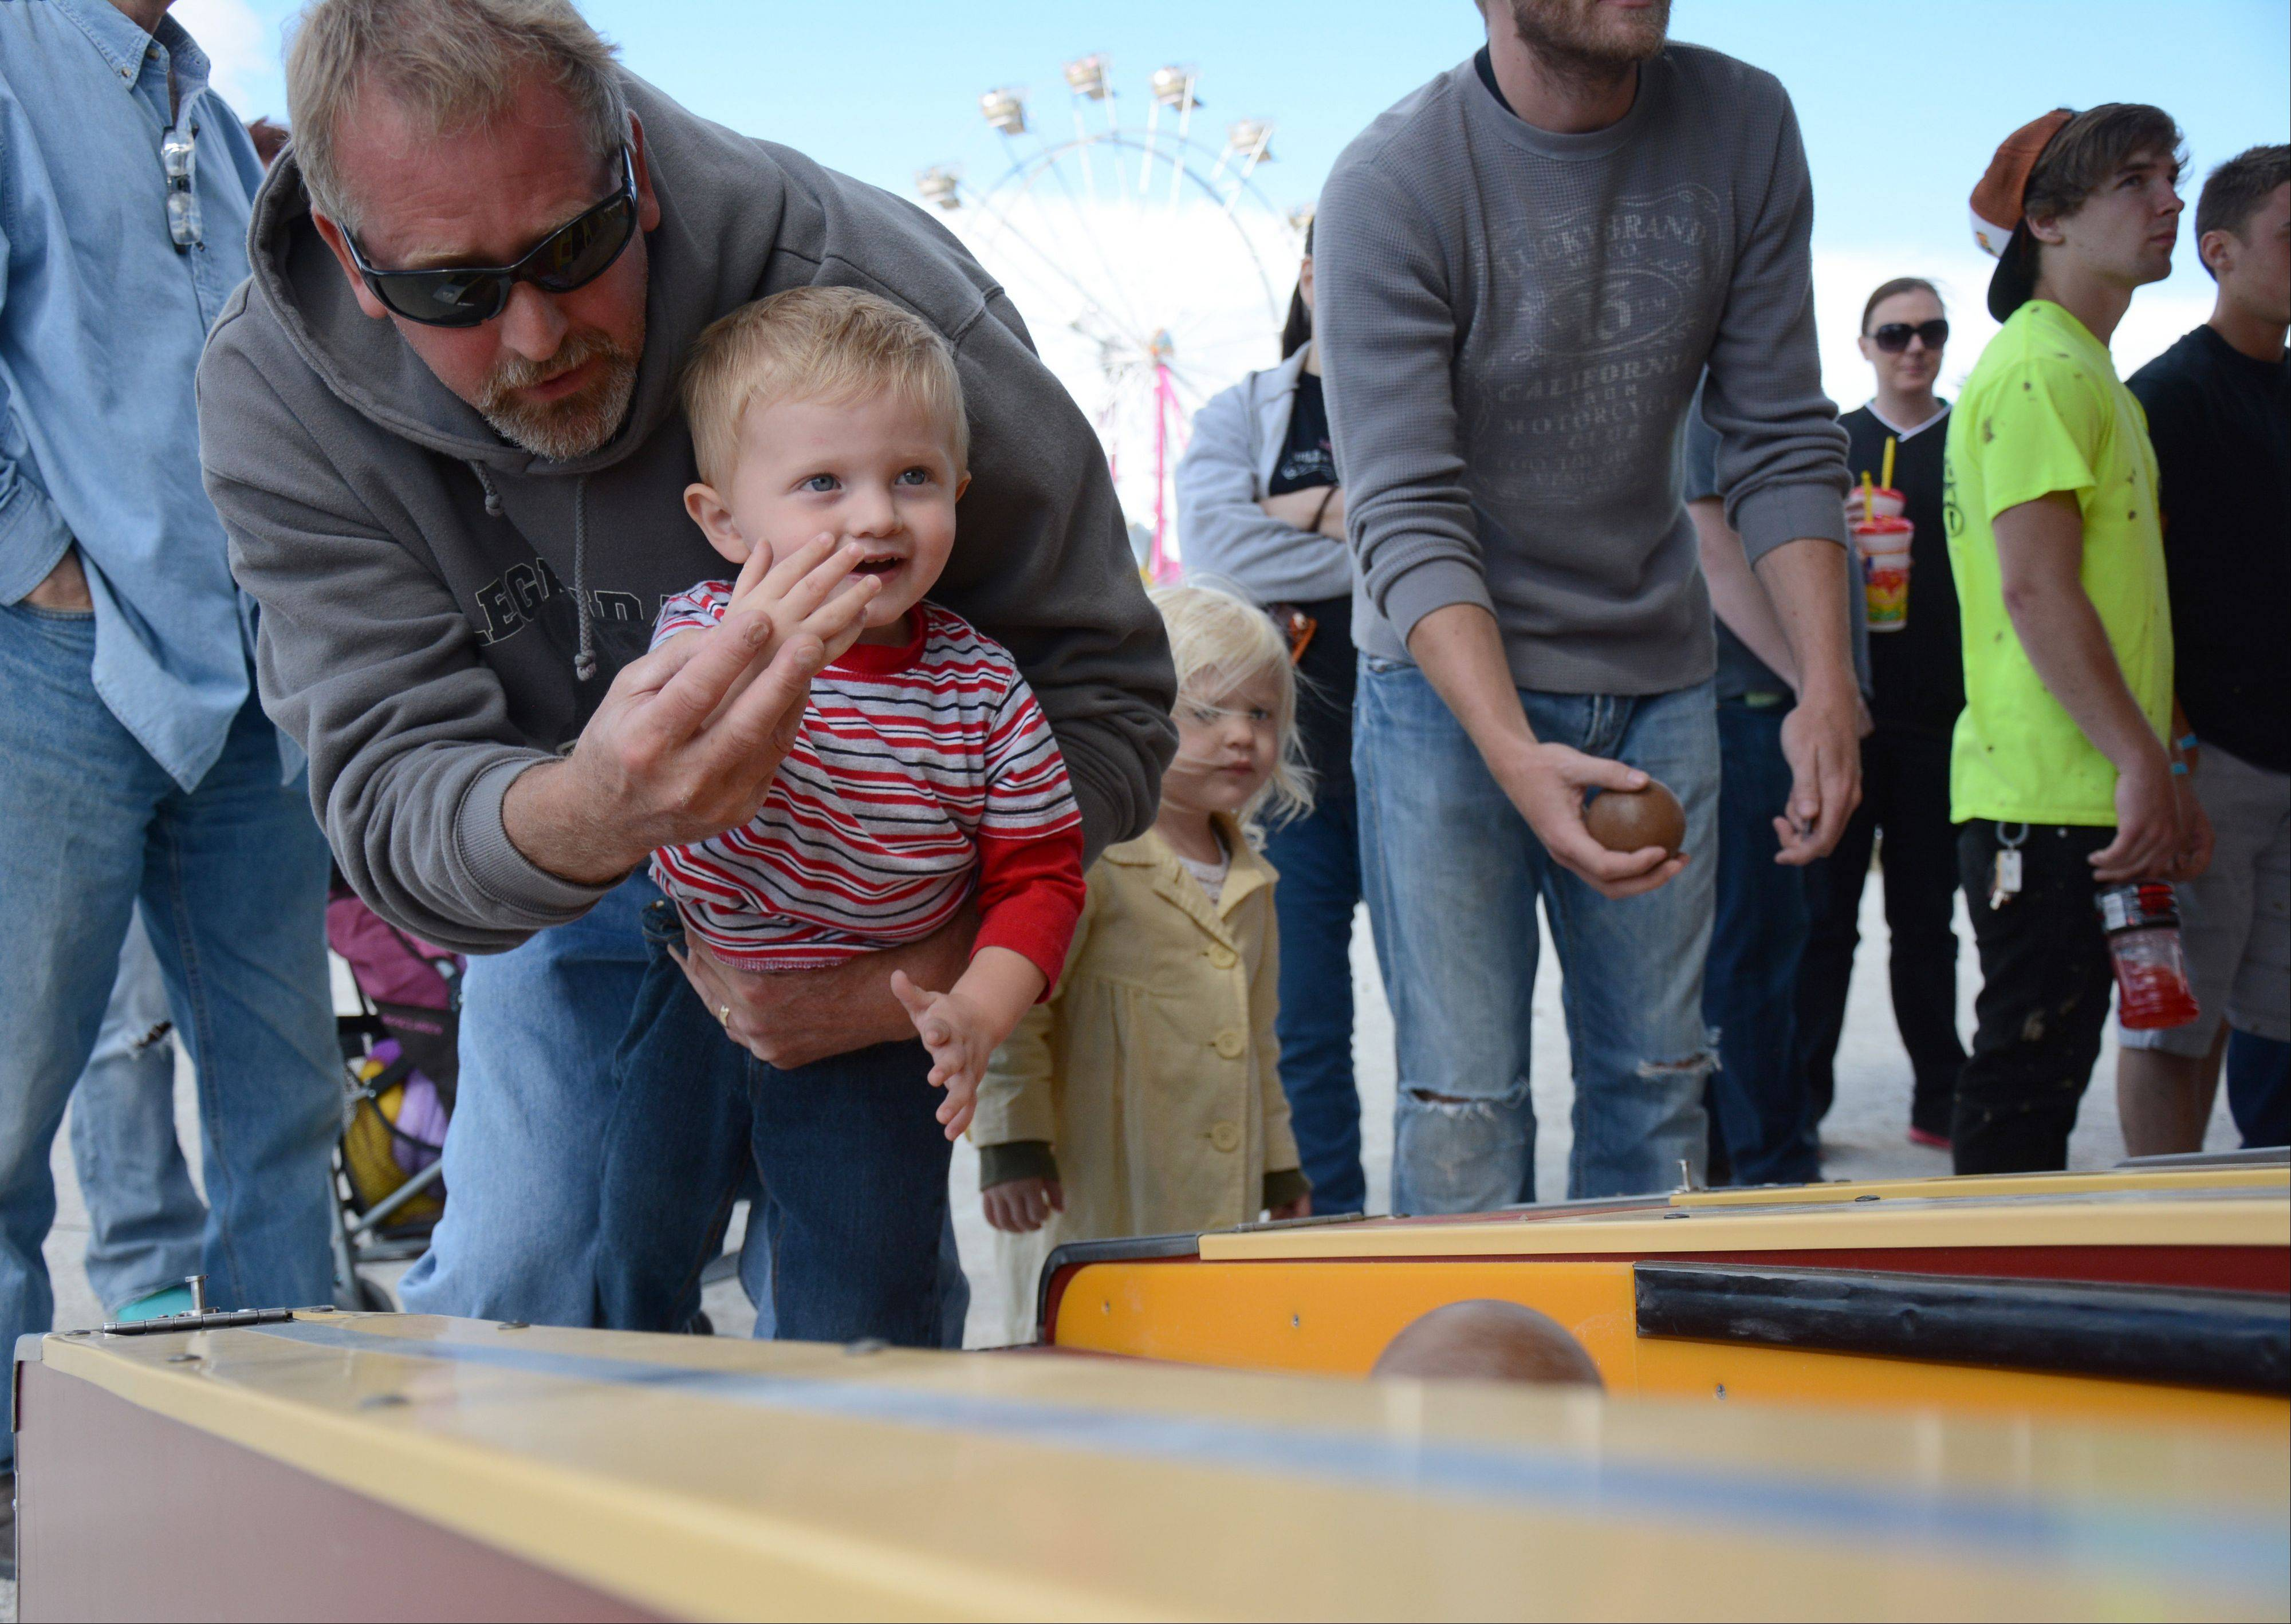 Bill Joerger, of Mundelein, helps his grandson, Bill Jr. play Ski Ball at the Lake County Fair Sunday, July 28.